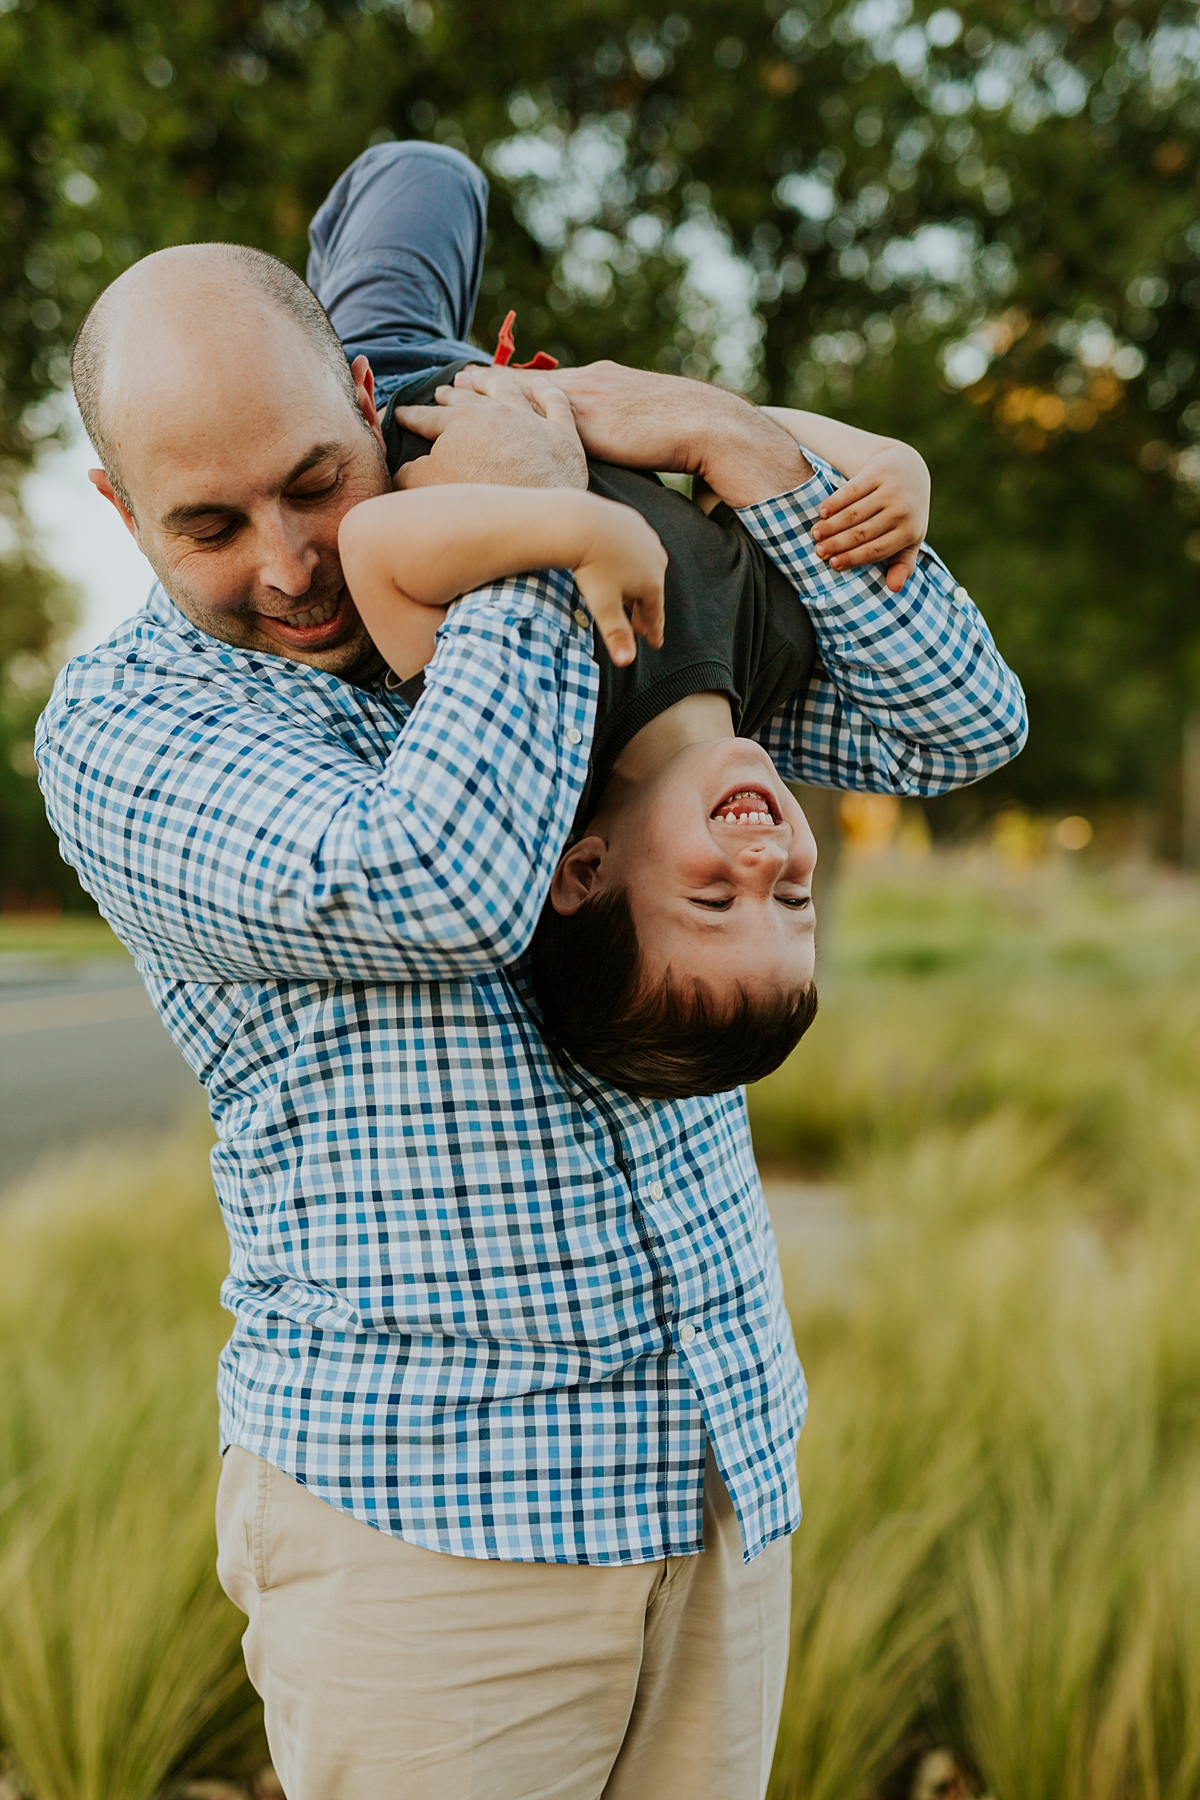 Orange County family photographer. Photo of dad playing with his son by tipping him upside down during family photo shoot at Quail Hill